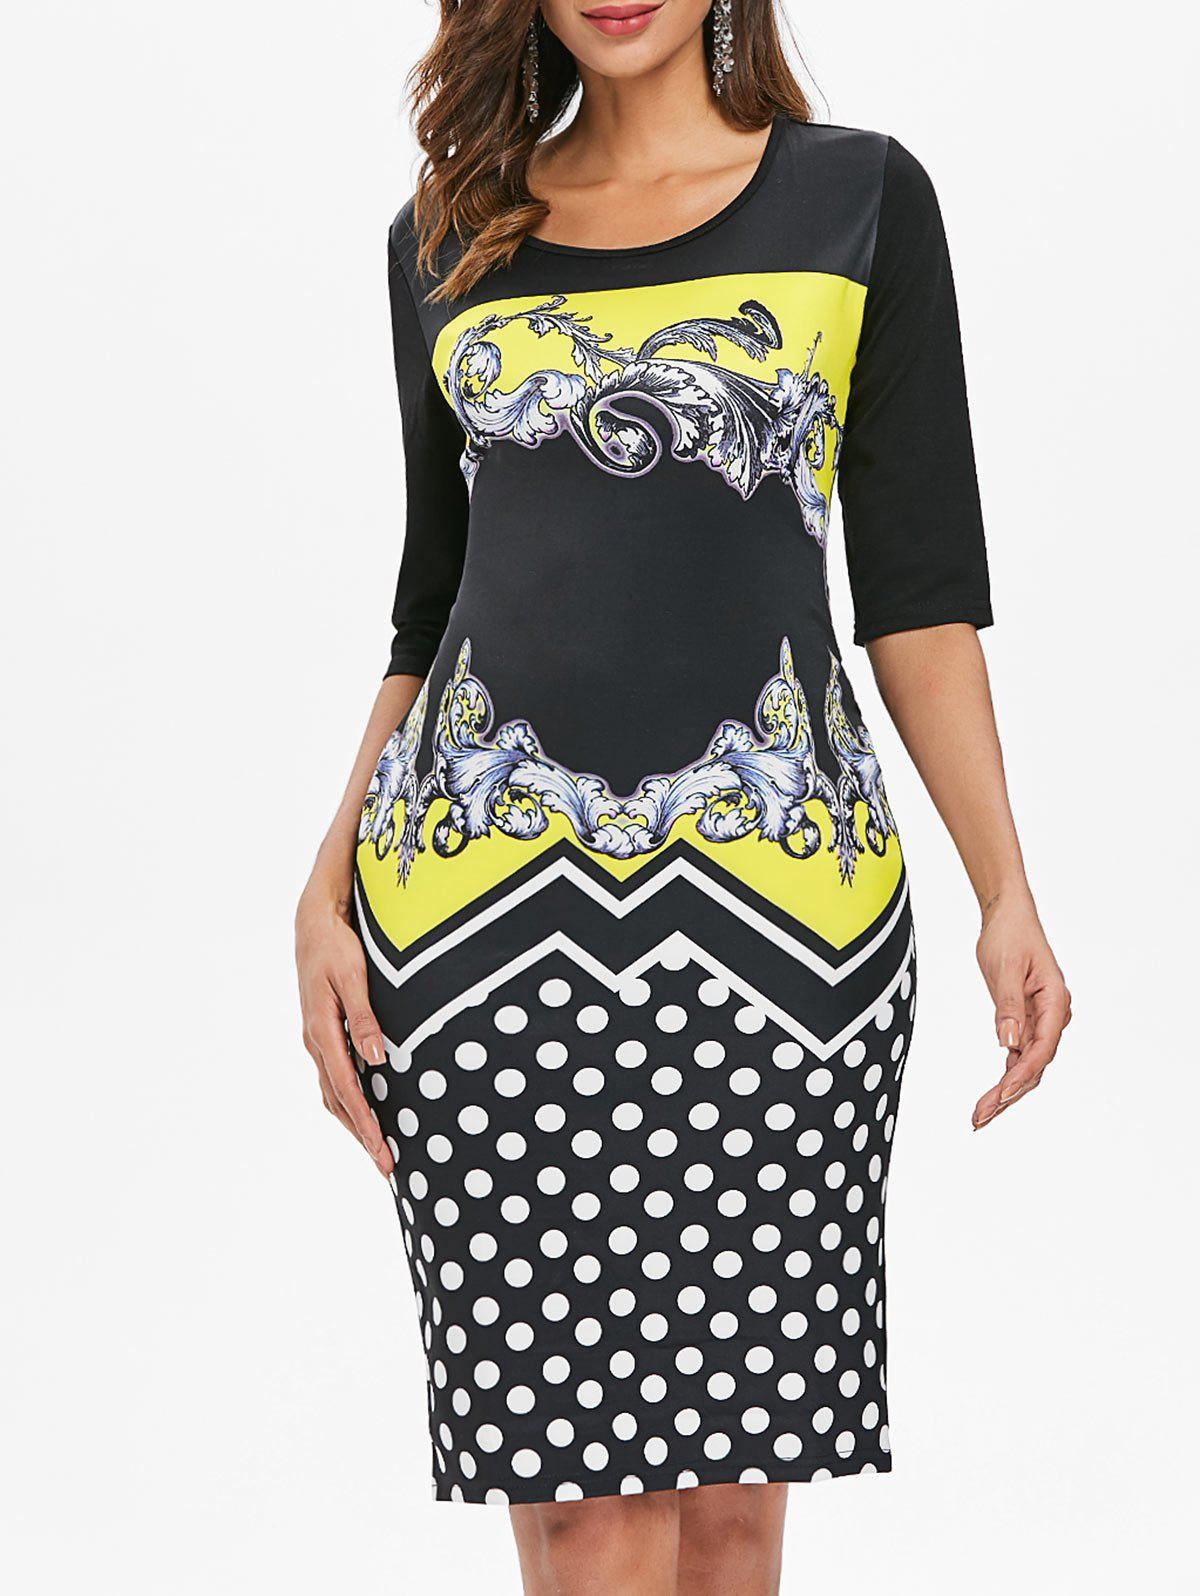 Chic Baroque Print Dotted Sheath Dress